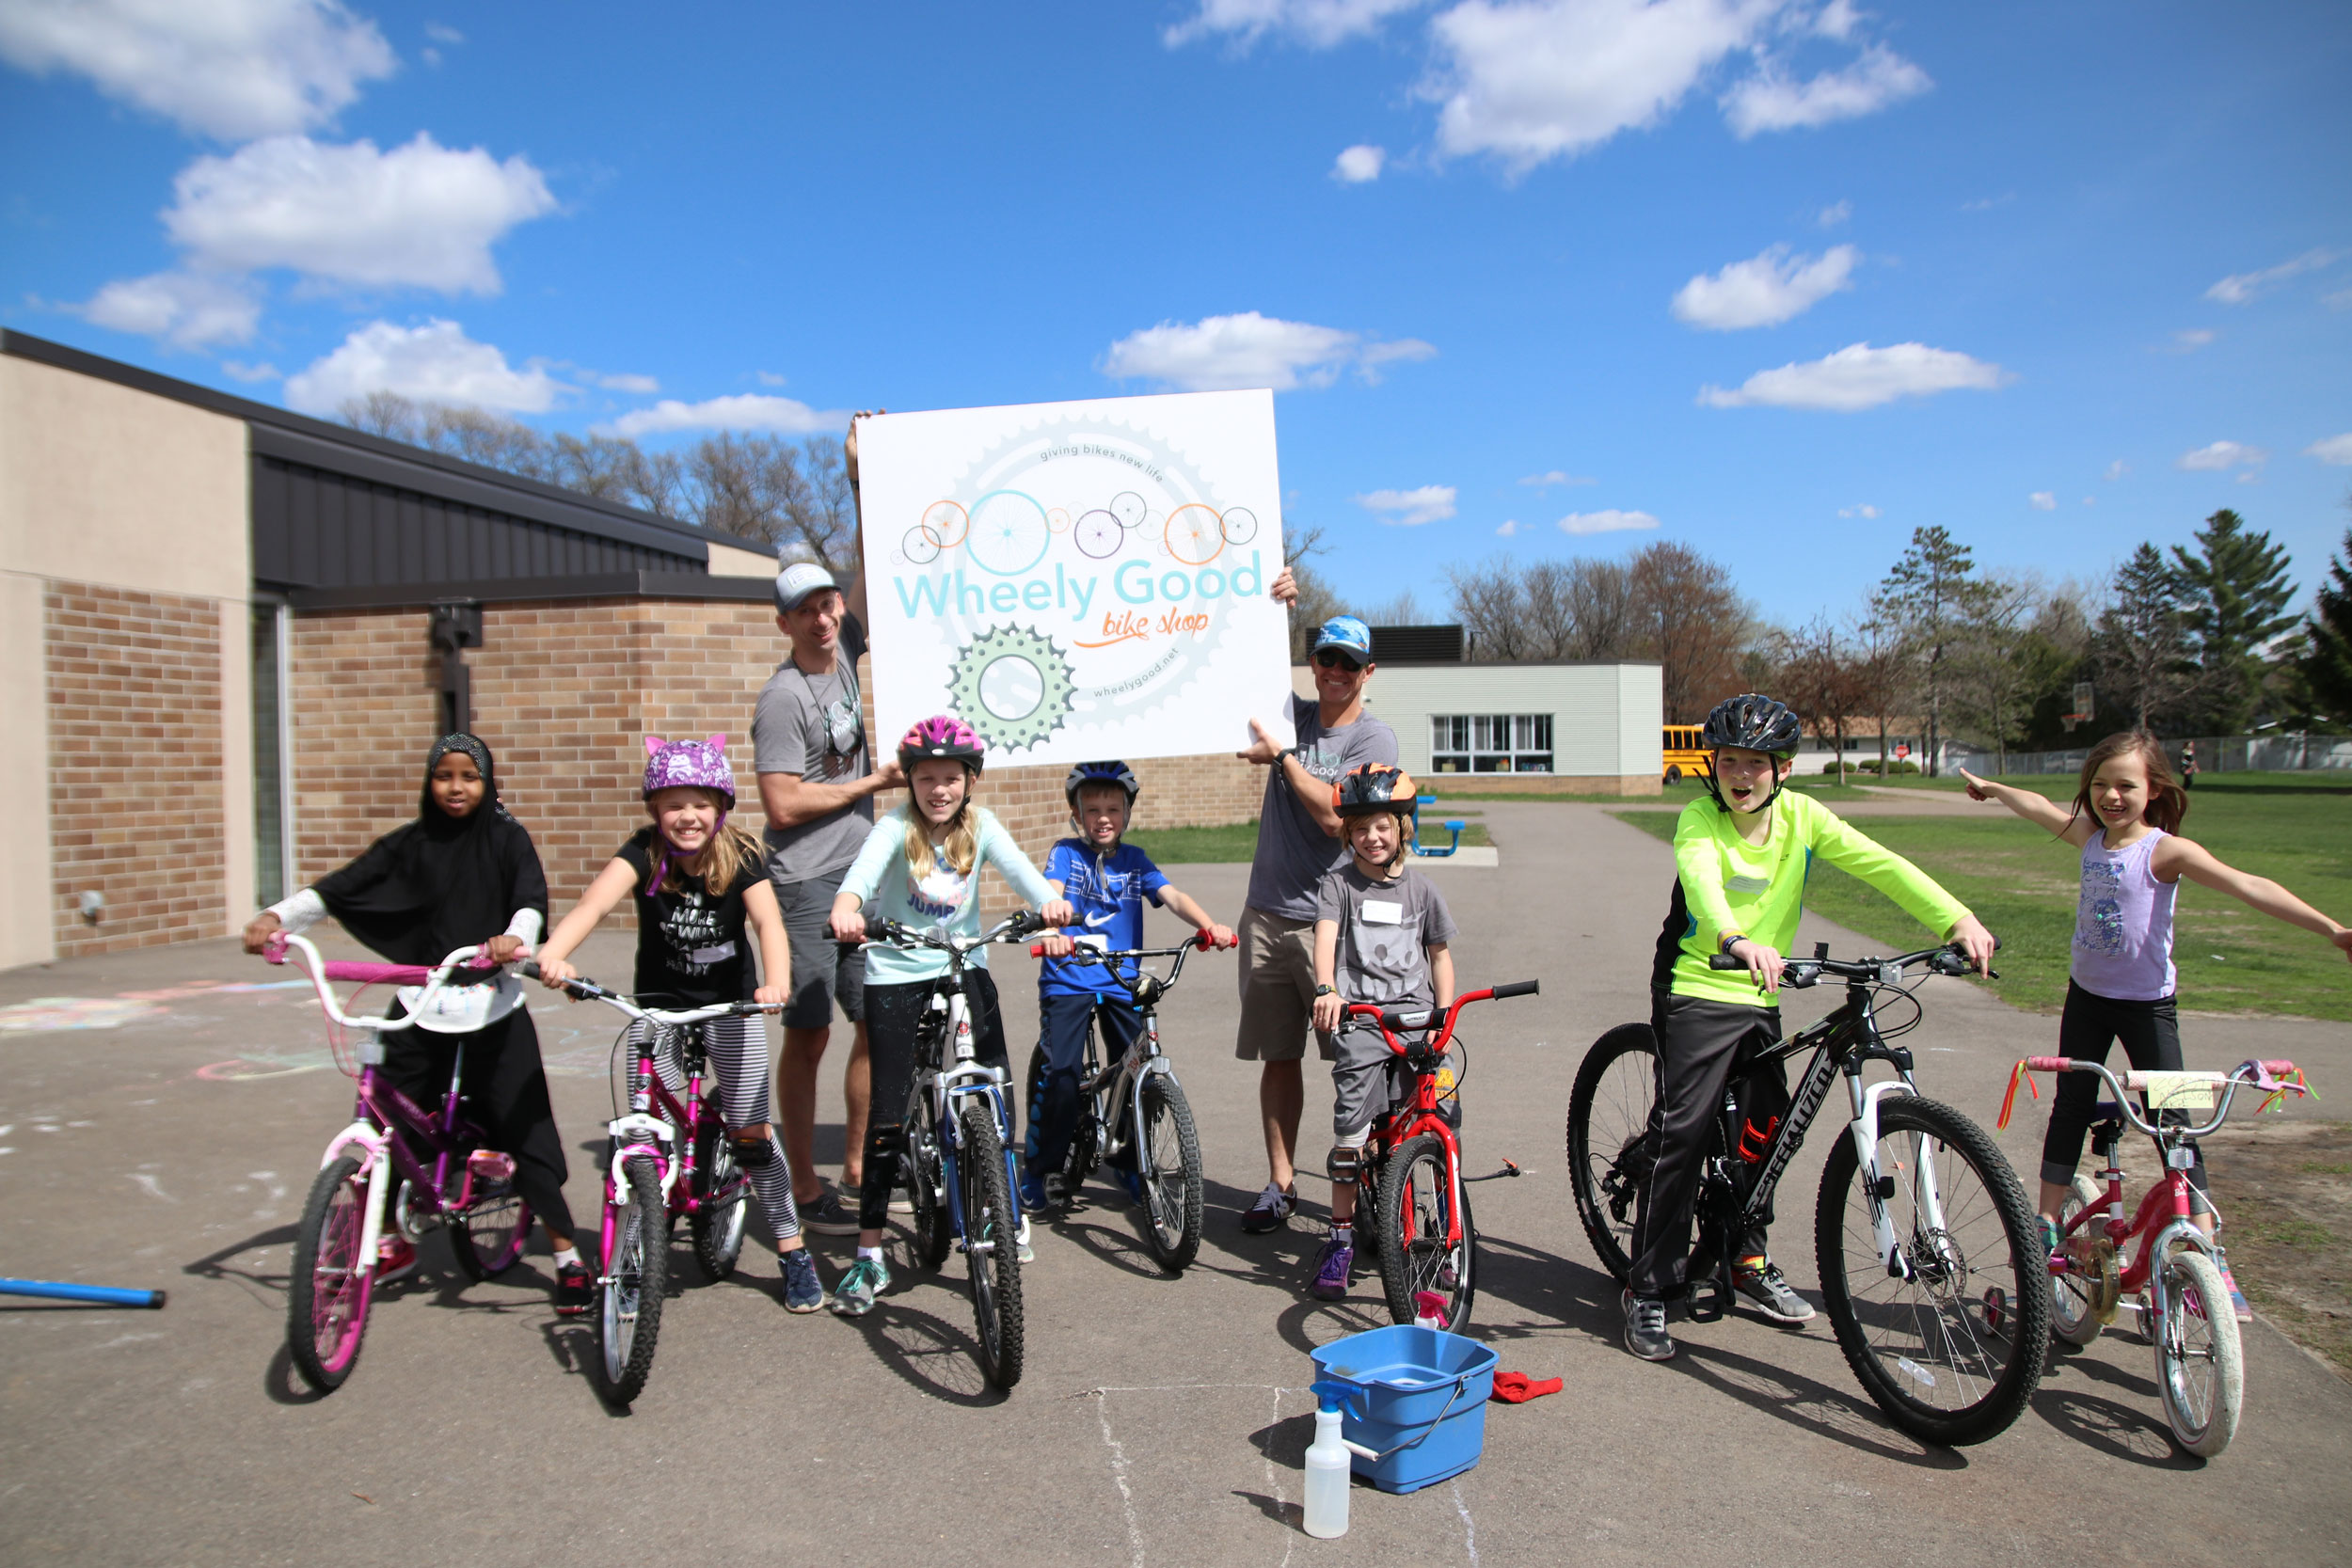 Kids College, Wheely Good Bike Shop, Birchview Elementary